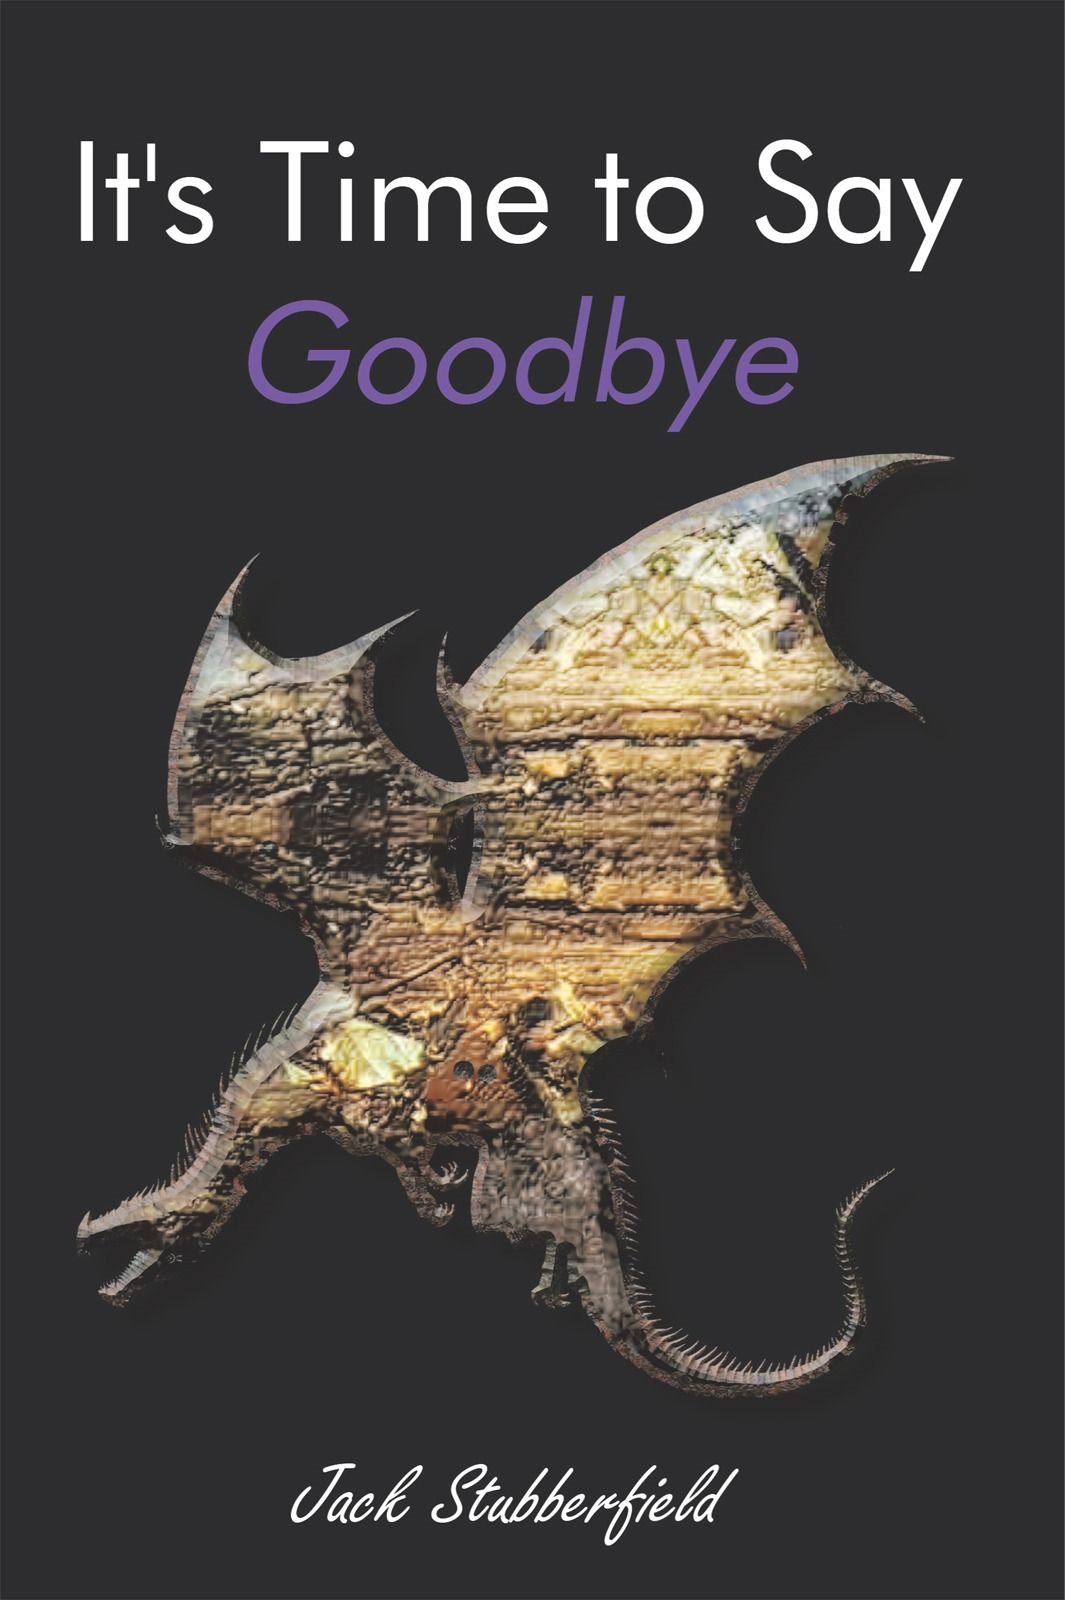 It's Time To Say Goodbye